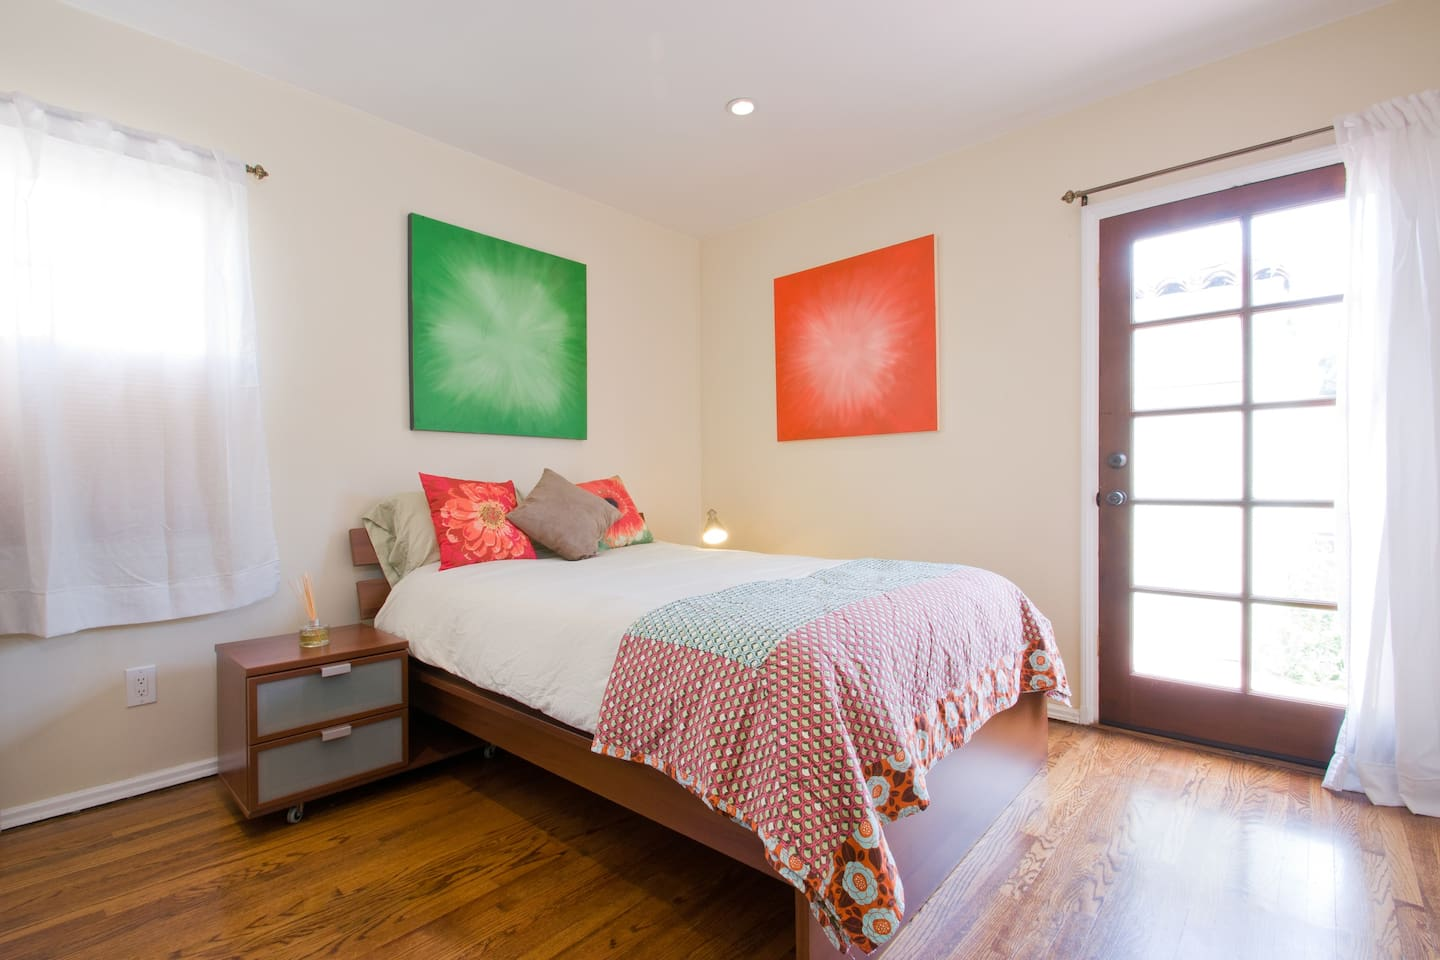 Feel right at home in the warm colors and in-house artistic paintings.